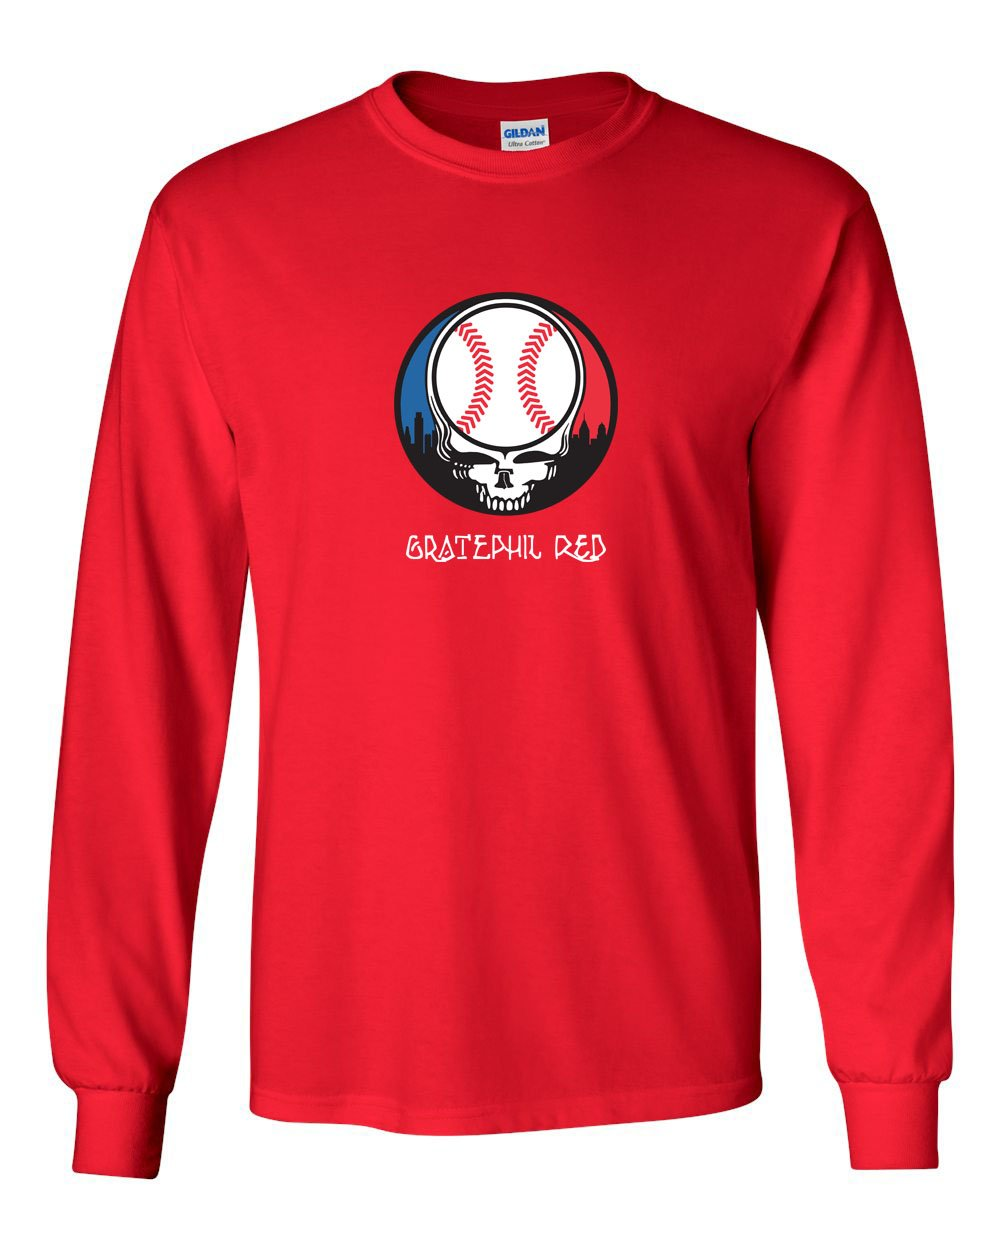 Gratephil Red MENS Long Sleeve Heavy Cotton T-Shirt